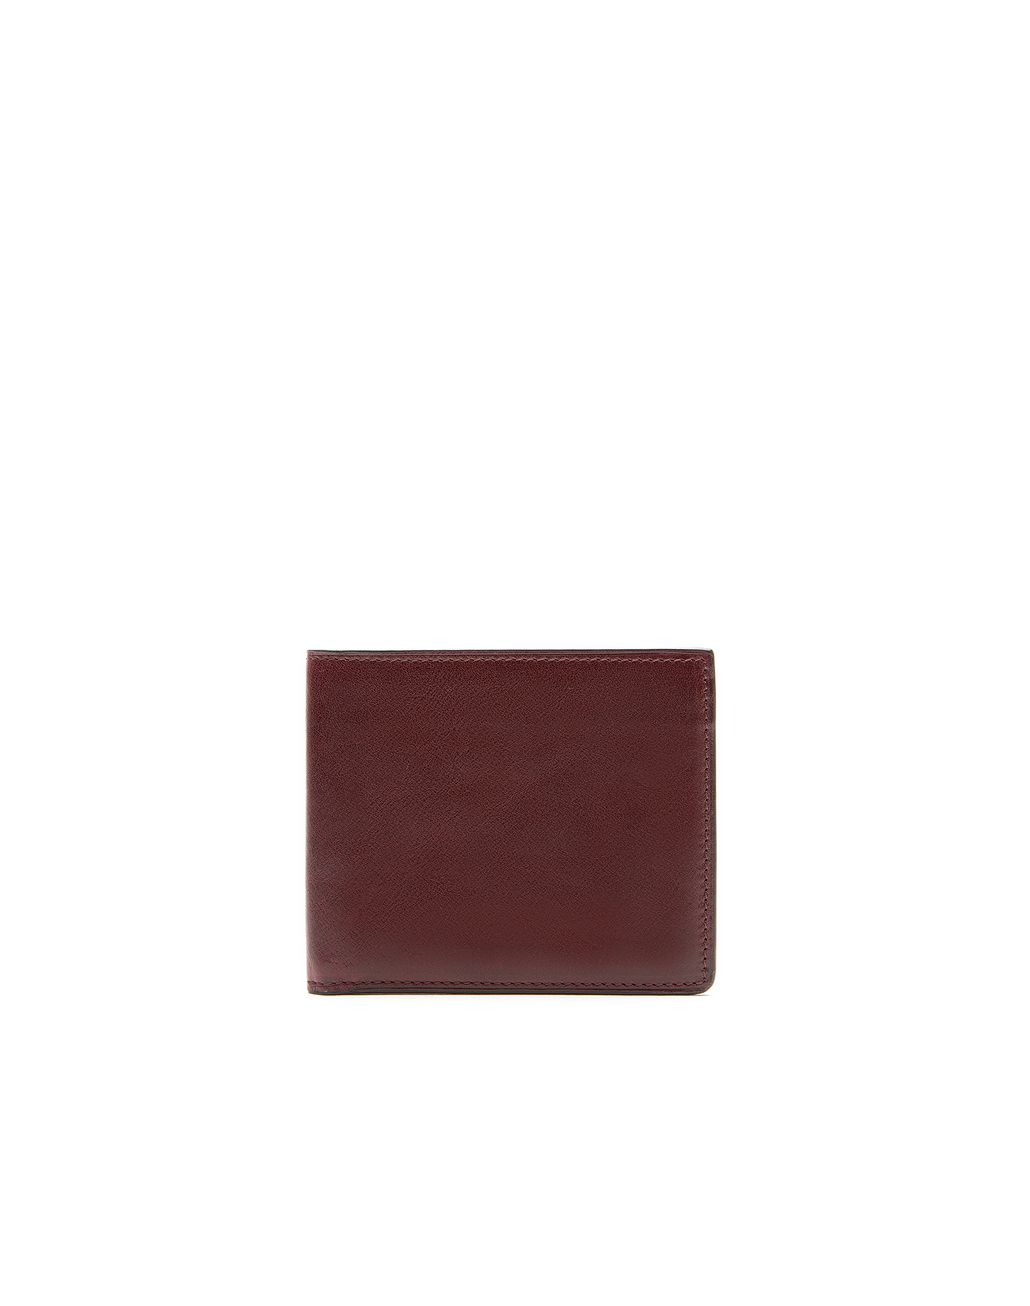 BRIONI Oxblood Slim Wallet Leather Goods Man f